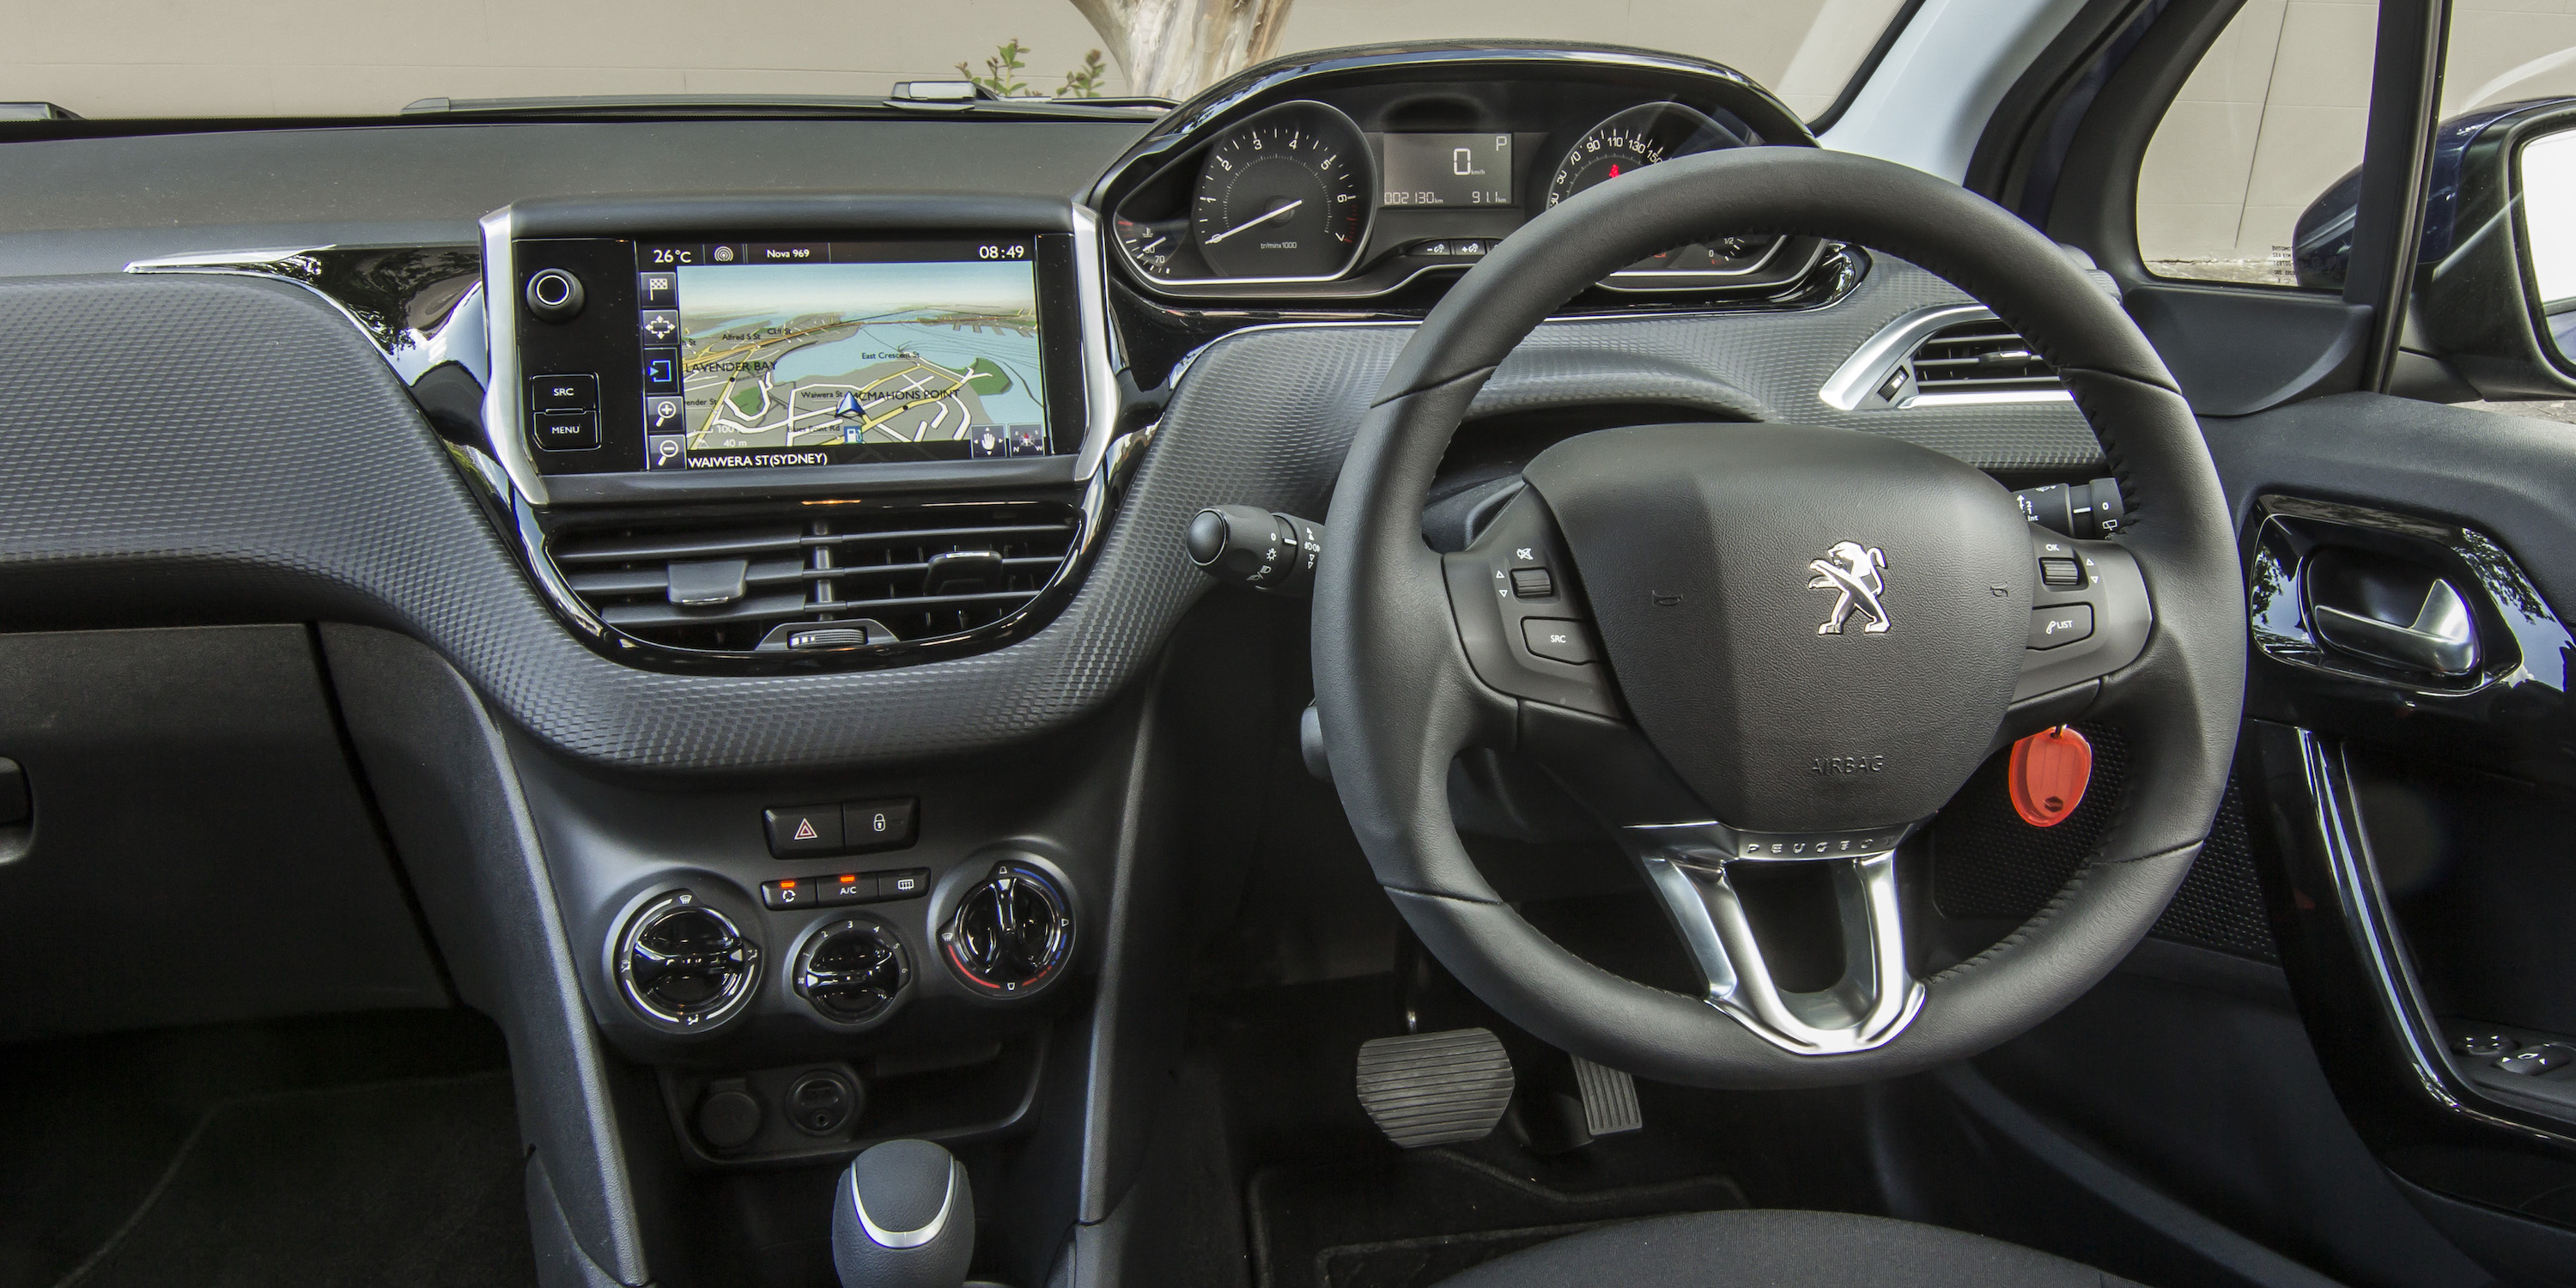 2016 Peugeot 208 Active Cockpit Interior